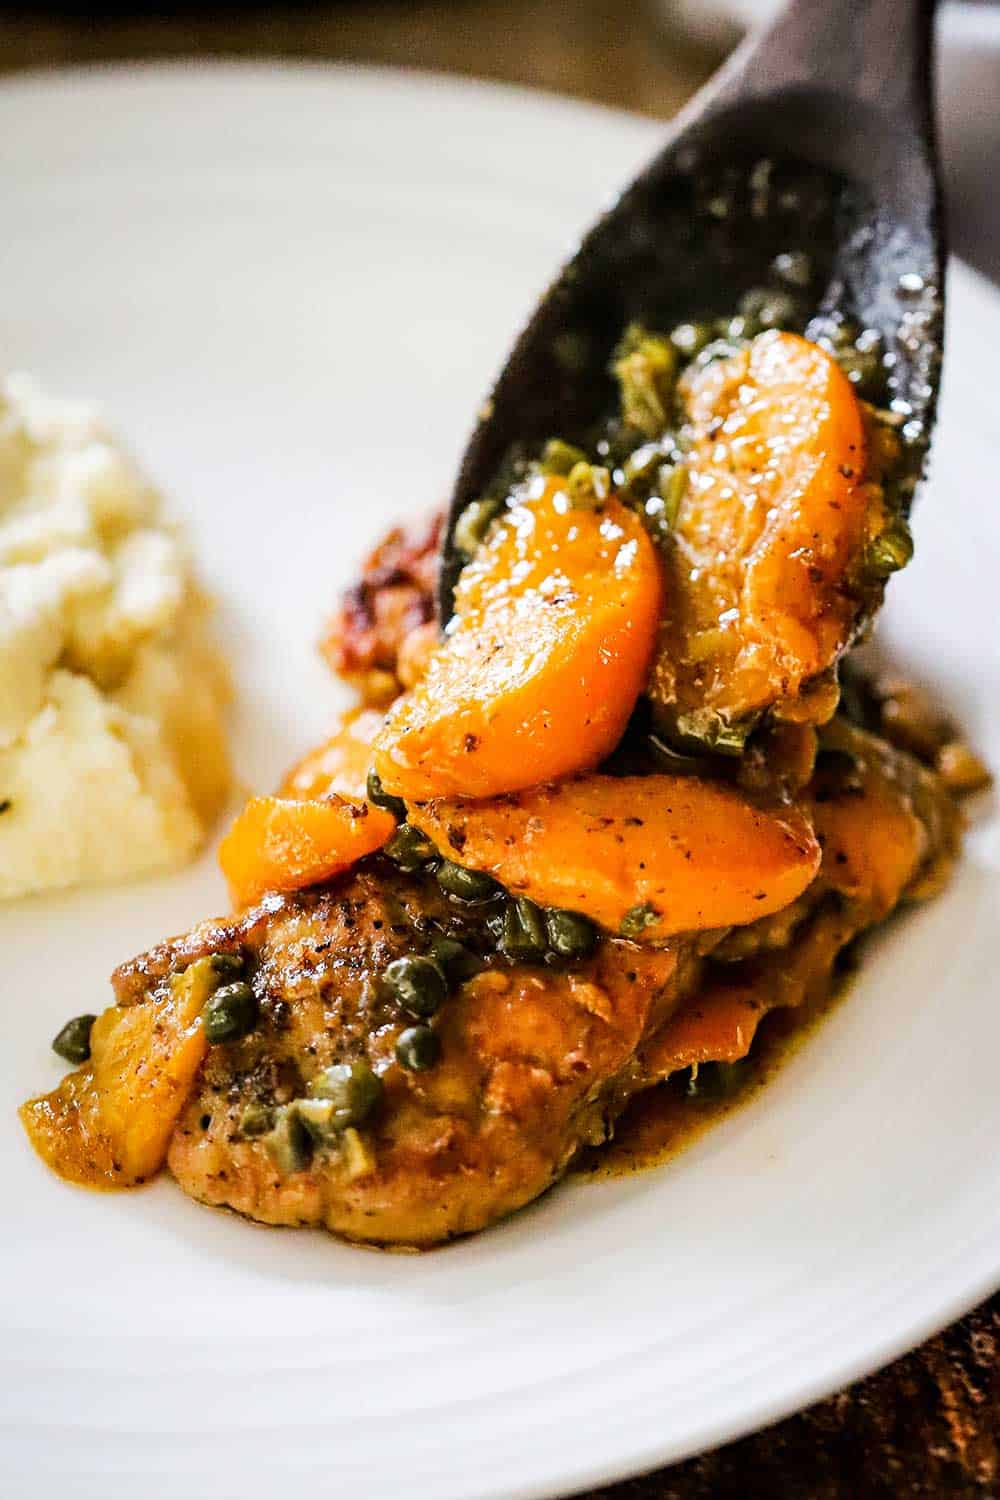 A wooden spoon transferring sautéed peaches and capers onto pan-fried pork cutlets on a white dinner plate.